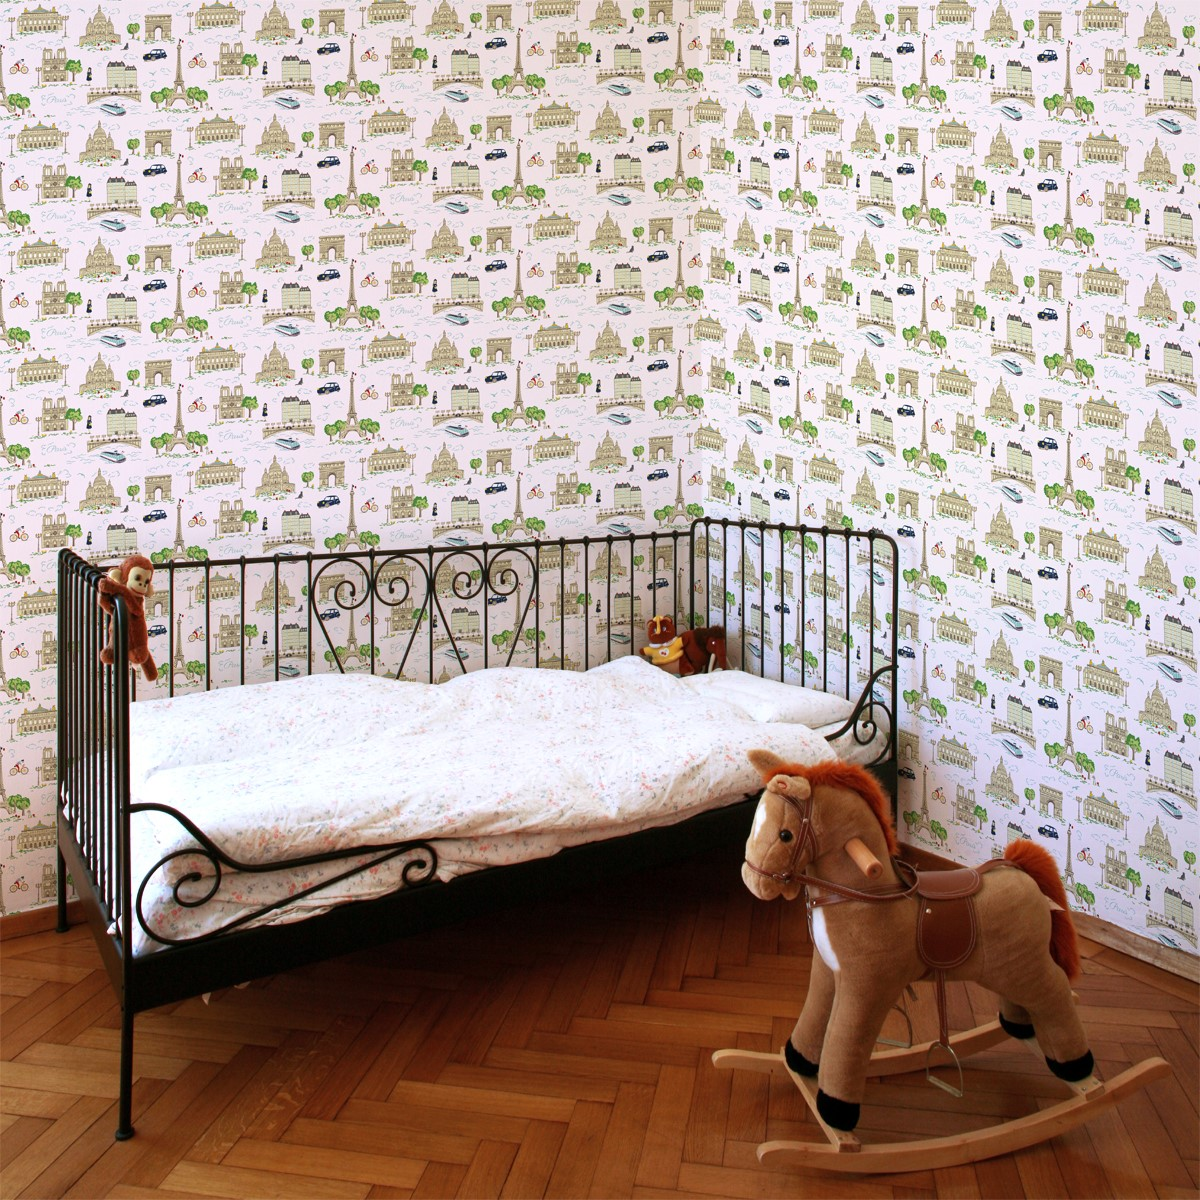 rouleau de papier peint 143191 toile de paris rose. Black Bedroom Furniture Sets. Home Design Ideas